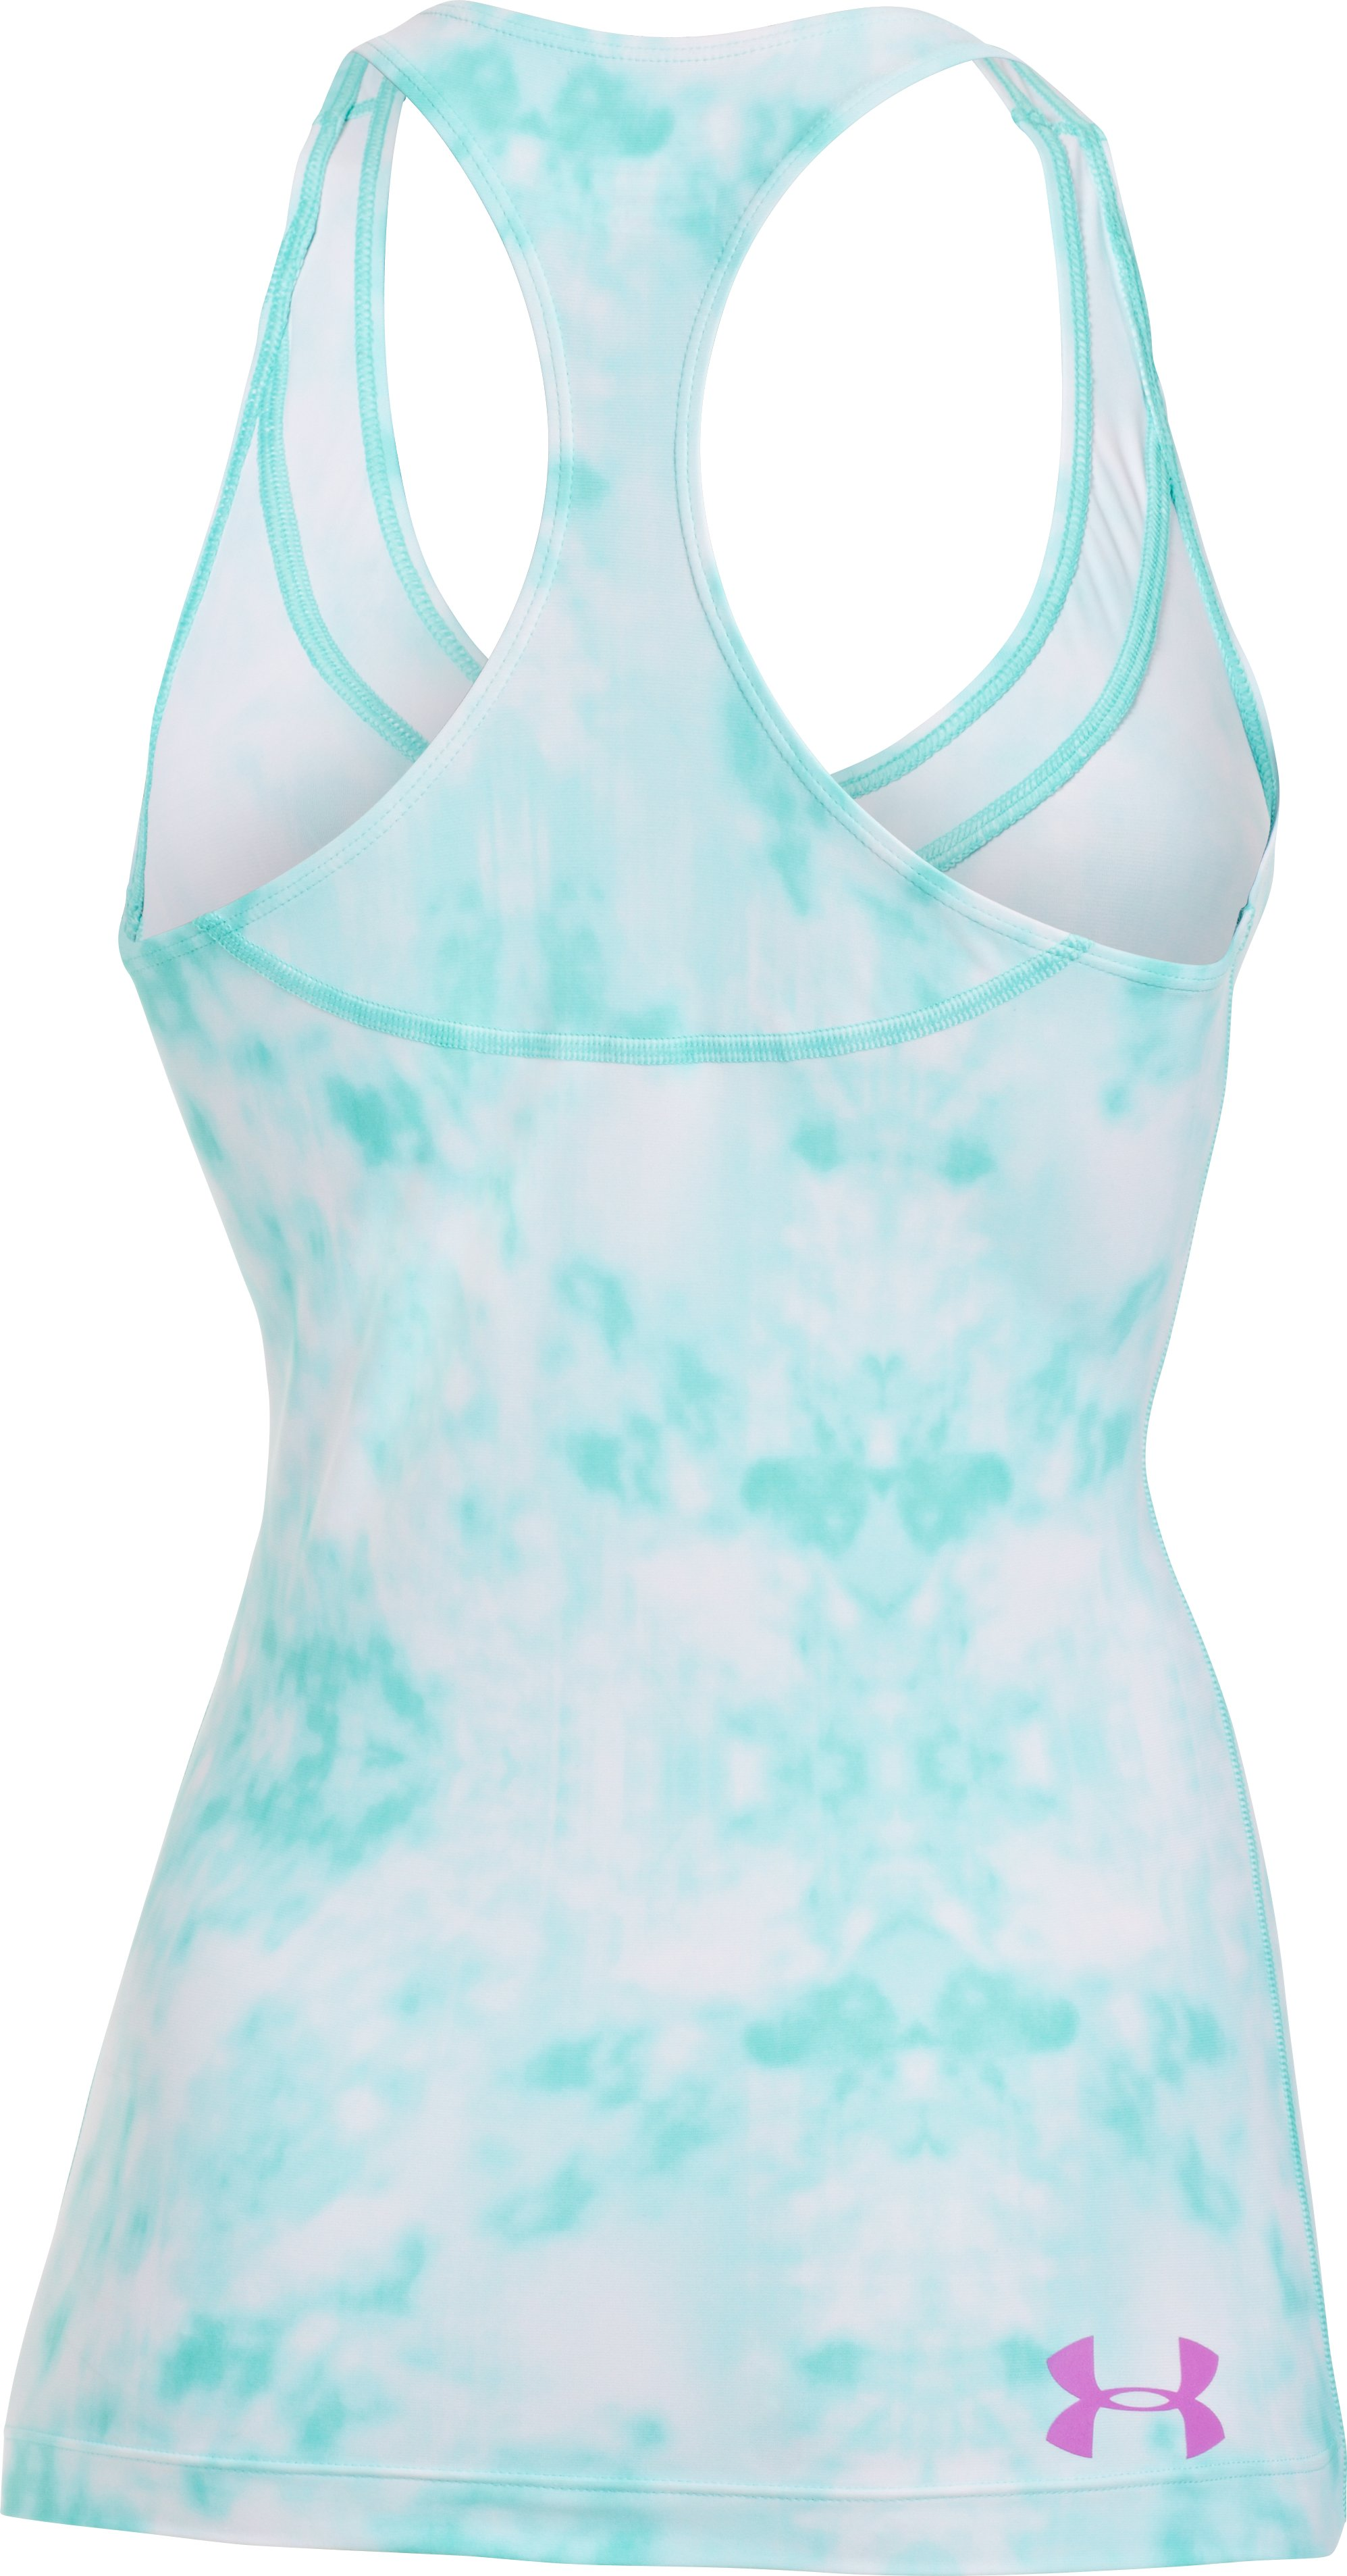 Women's UA Lianne Rash Guard Tank Top, TROPICAL TIDE, undefined